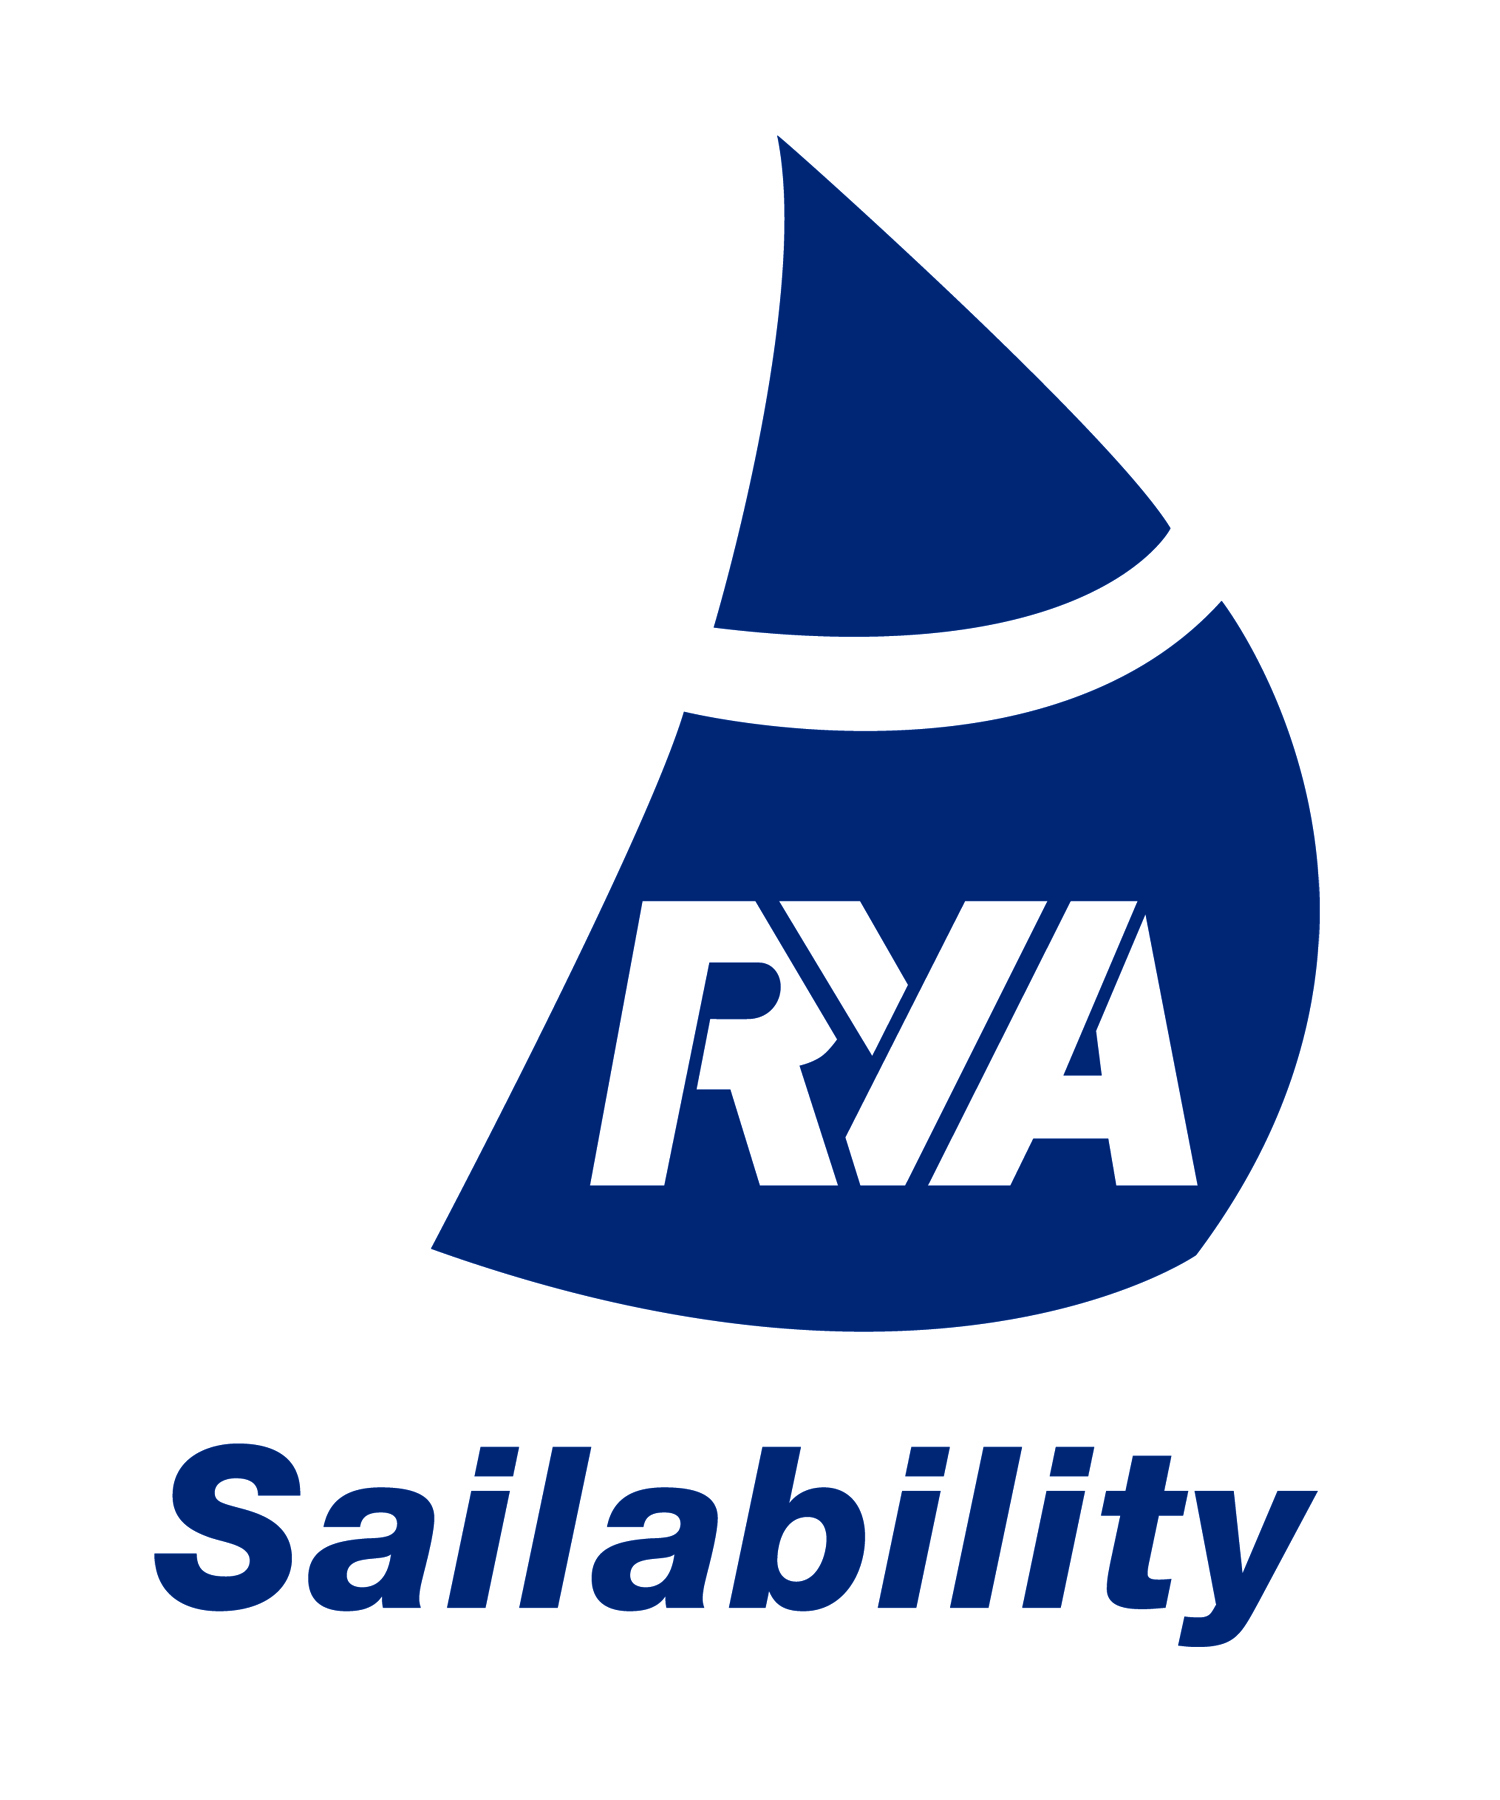 RYA Sailability - A Charity of Importance to EUSC